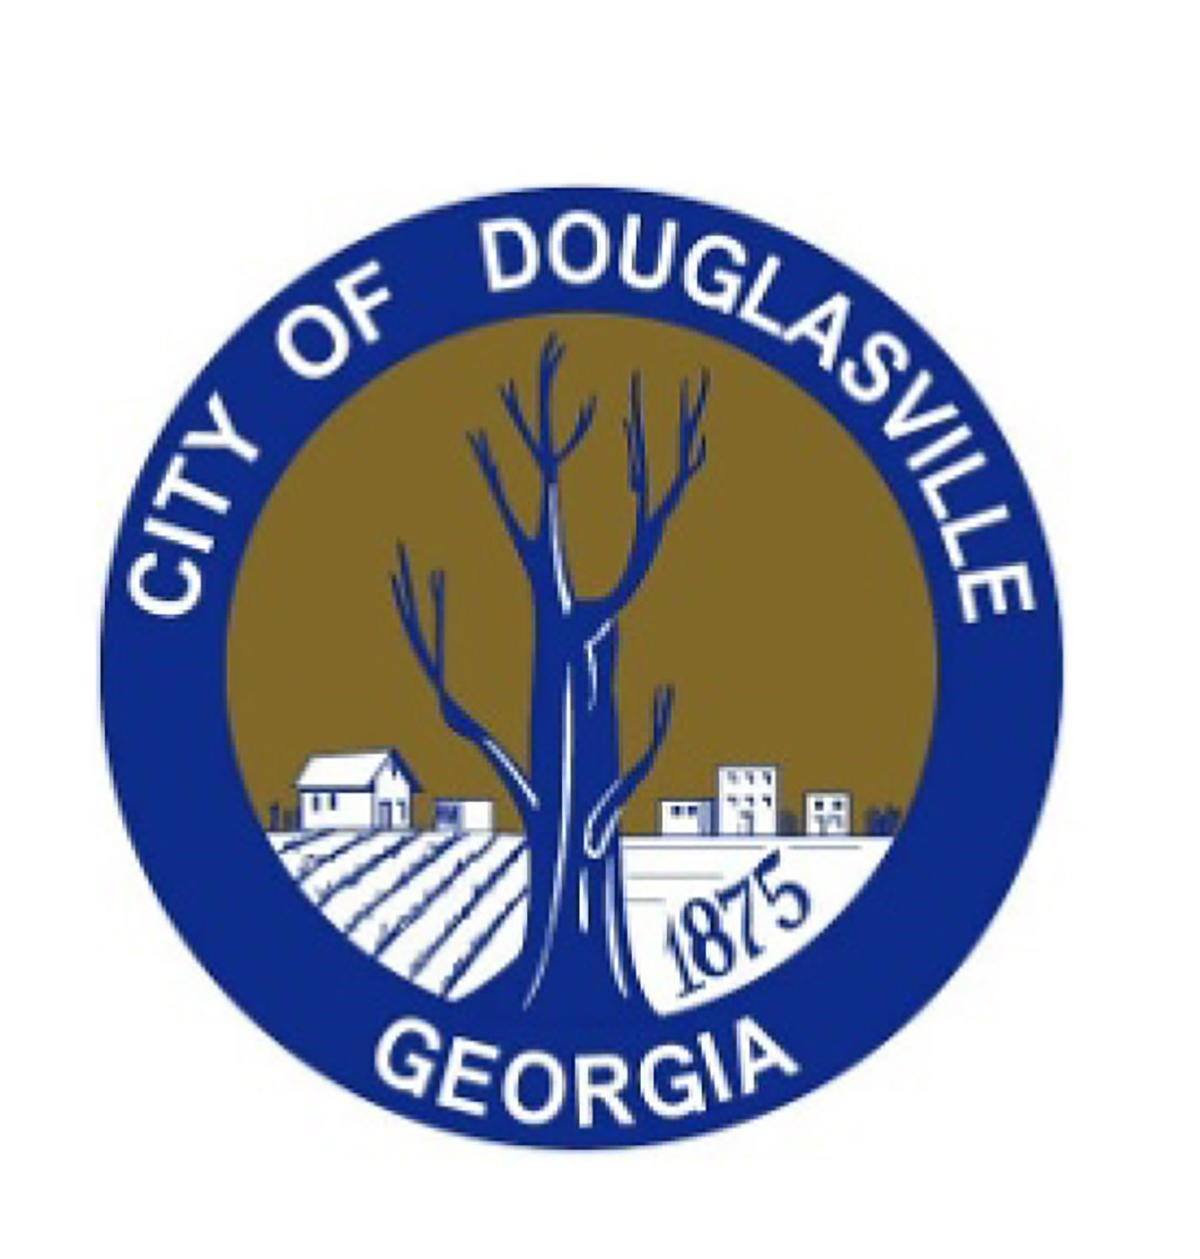 https://hughesray.com/wp-content/uploads/2018/06/city-of-douglasville.jpg